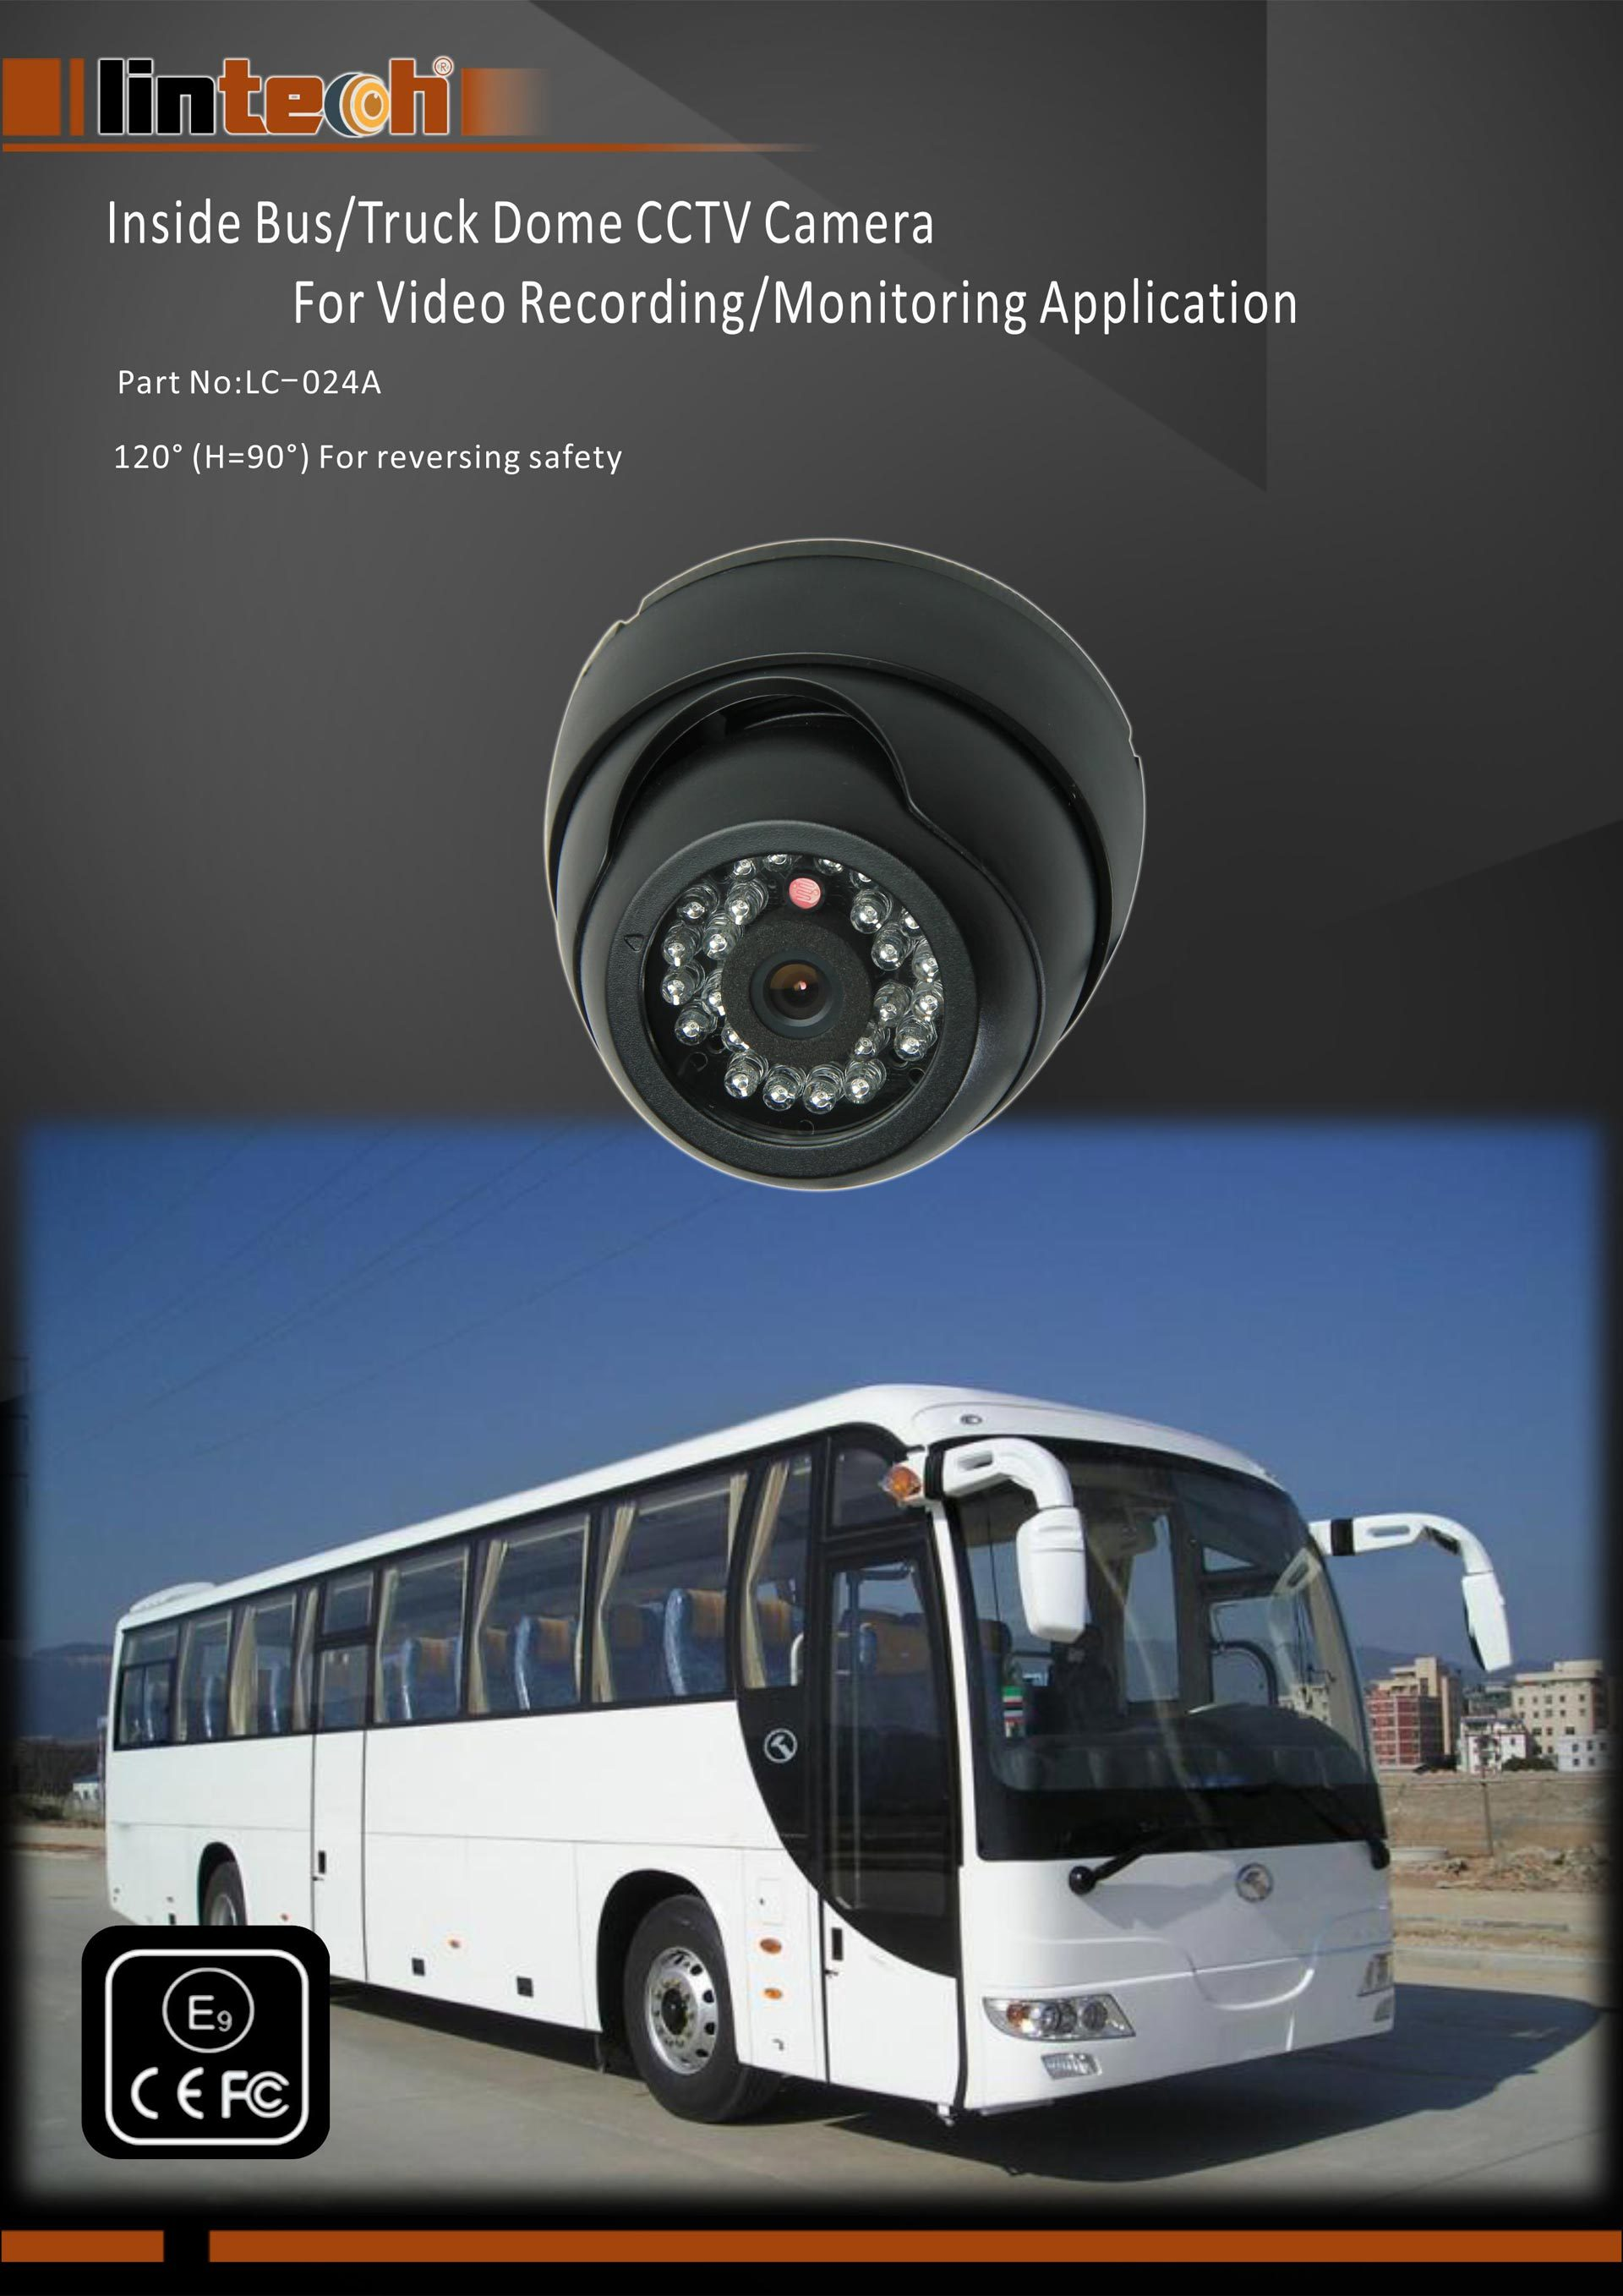 1. Inside Bus Truck Dome CCTV Camera For Video Recording Monitoring Application